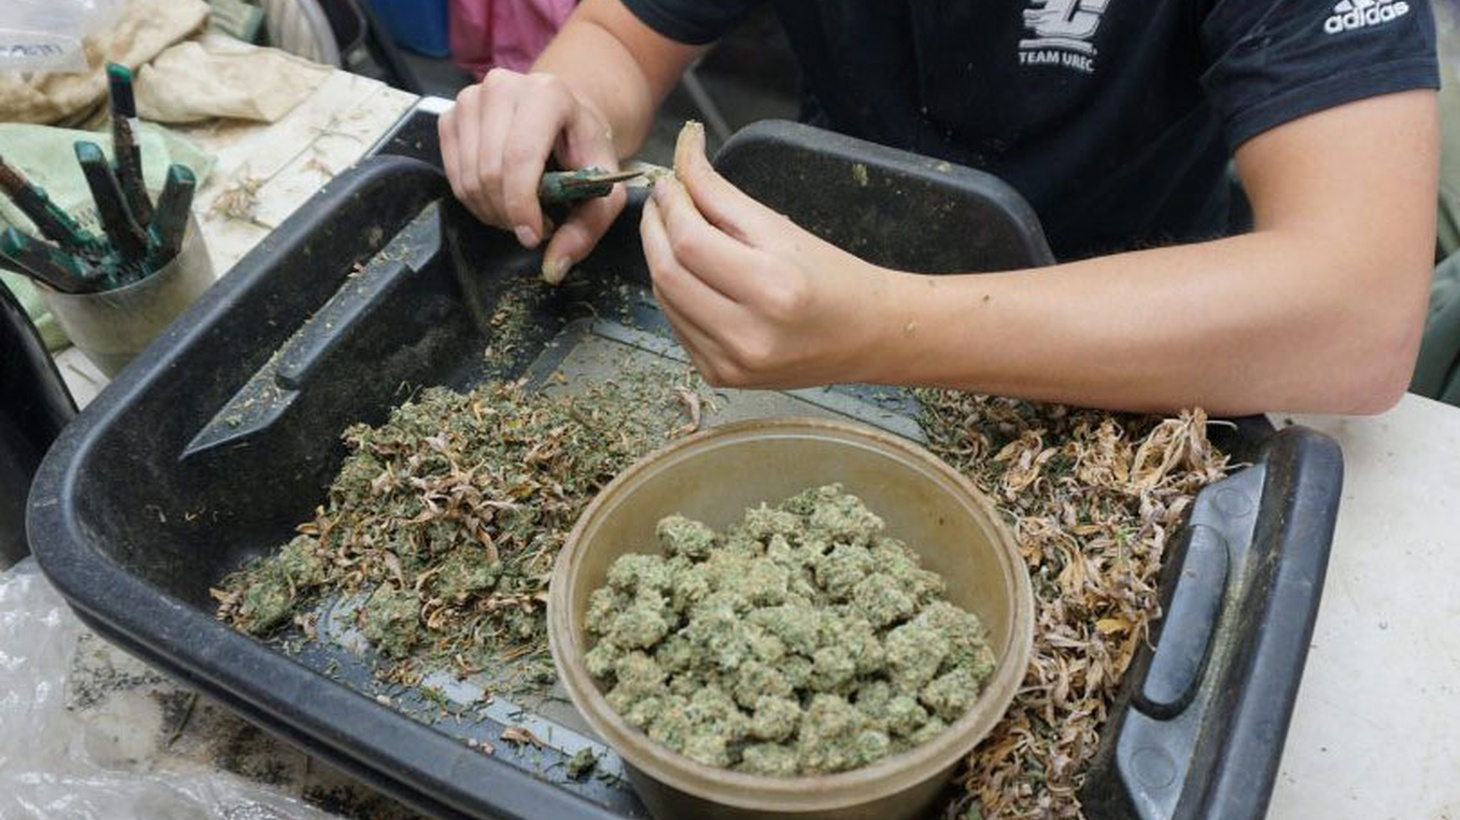 Recreational marijuana is now legal in California. So what will it cost you? KCRW goes to a local shop to find out how business will change.